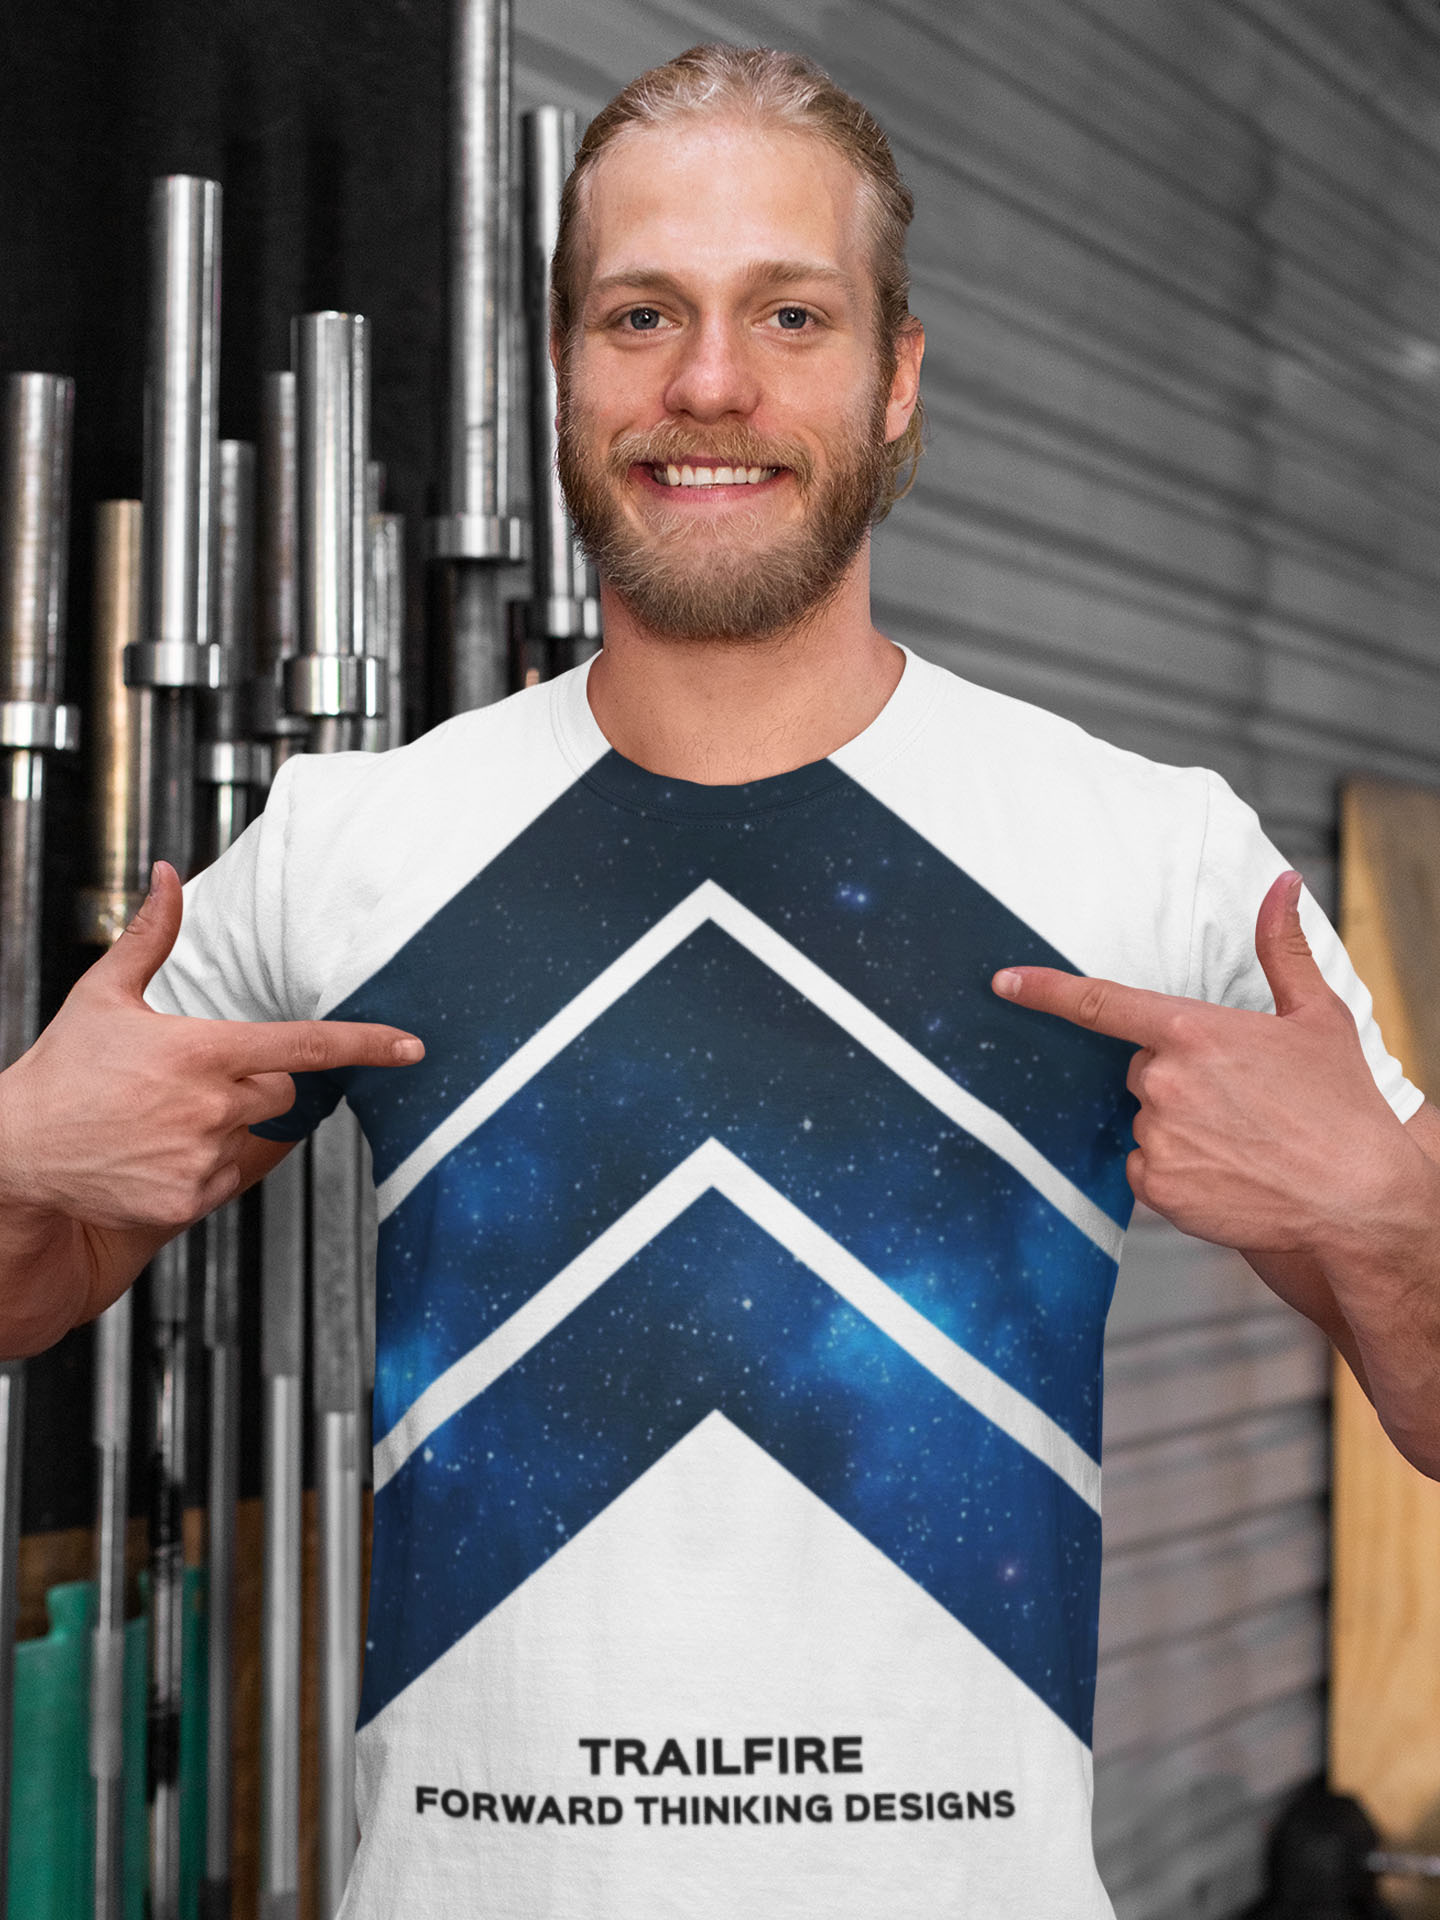 Spredshirt-Prints-Trailfire_0026_mockup-of-a-man-showing-his-sublimated-tee-in-front-of-the-bars-at-a-gym-33056 (1)